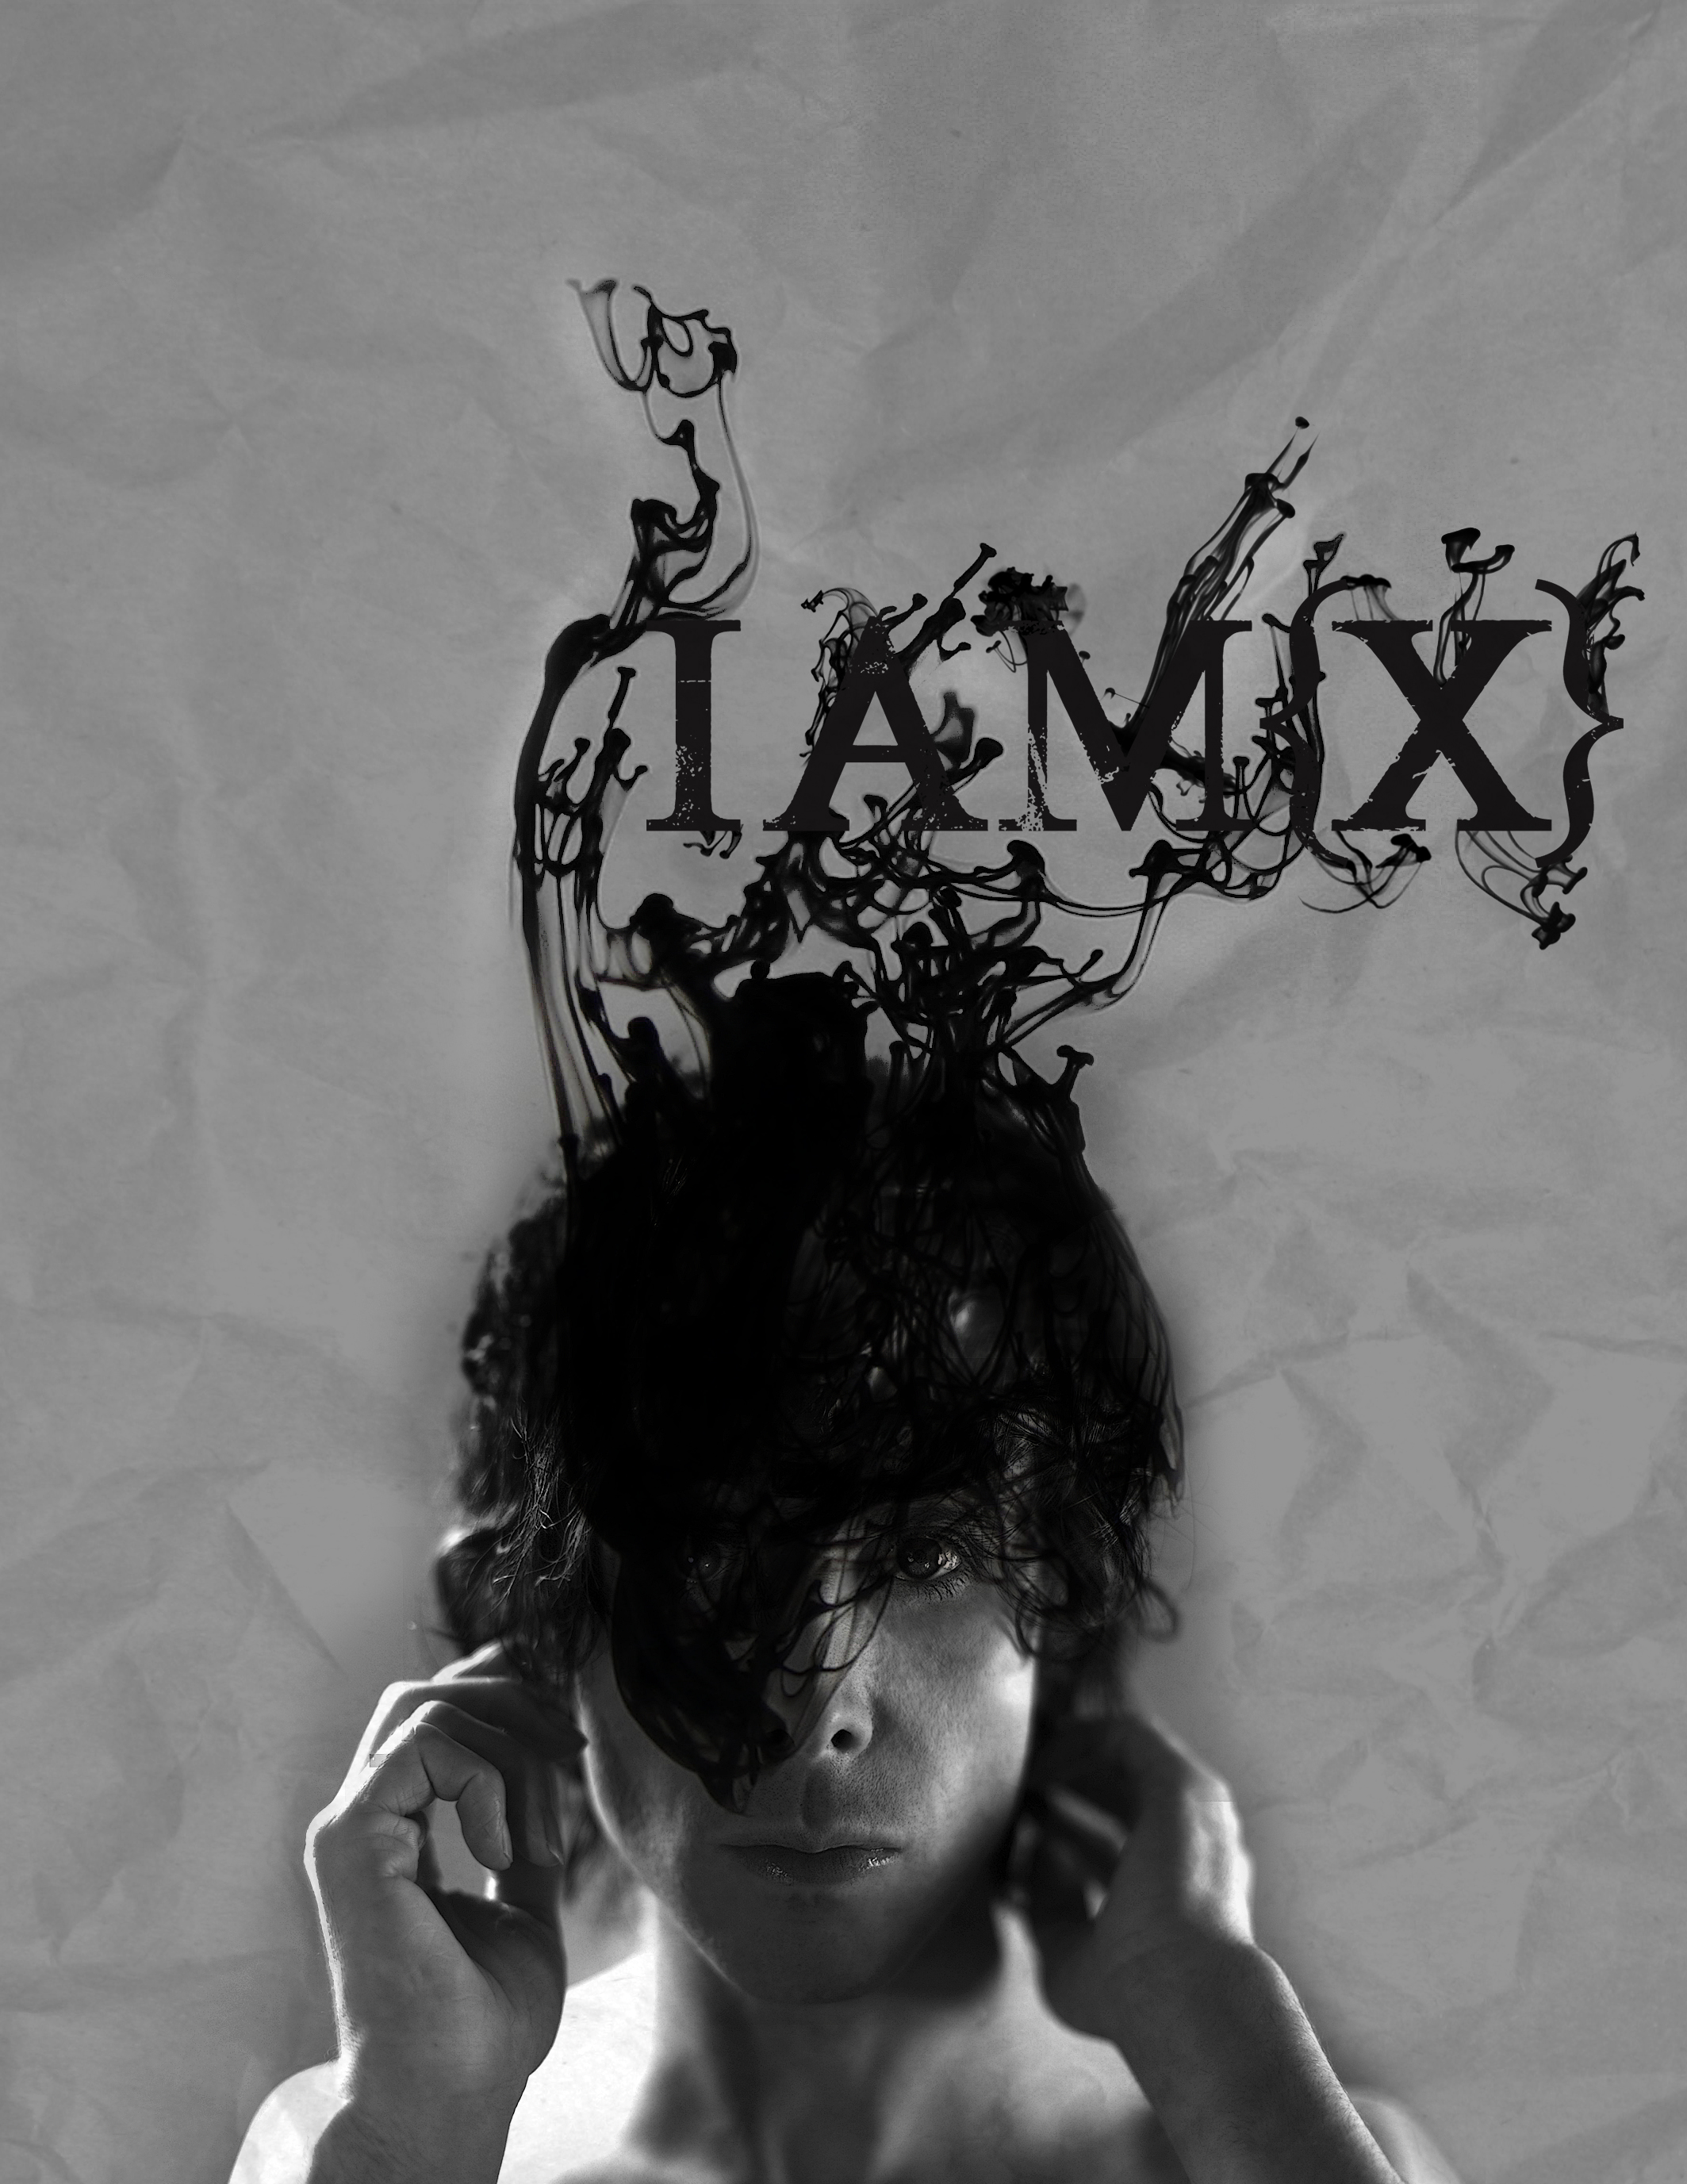 Todd Alcott Wallpapers IAMX Animal Impulses Tour Unofficial Promo by InsectGod on